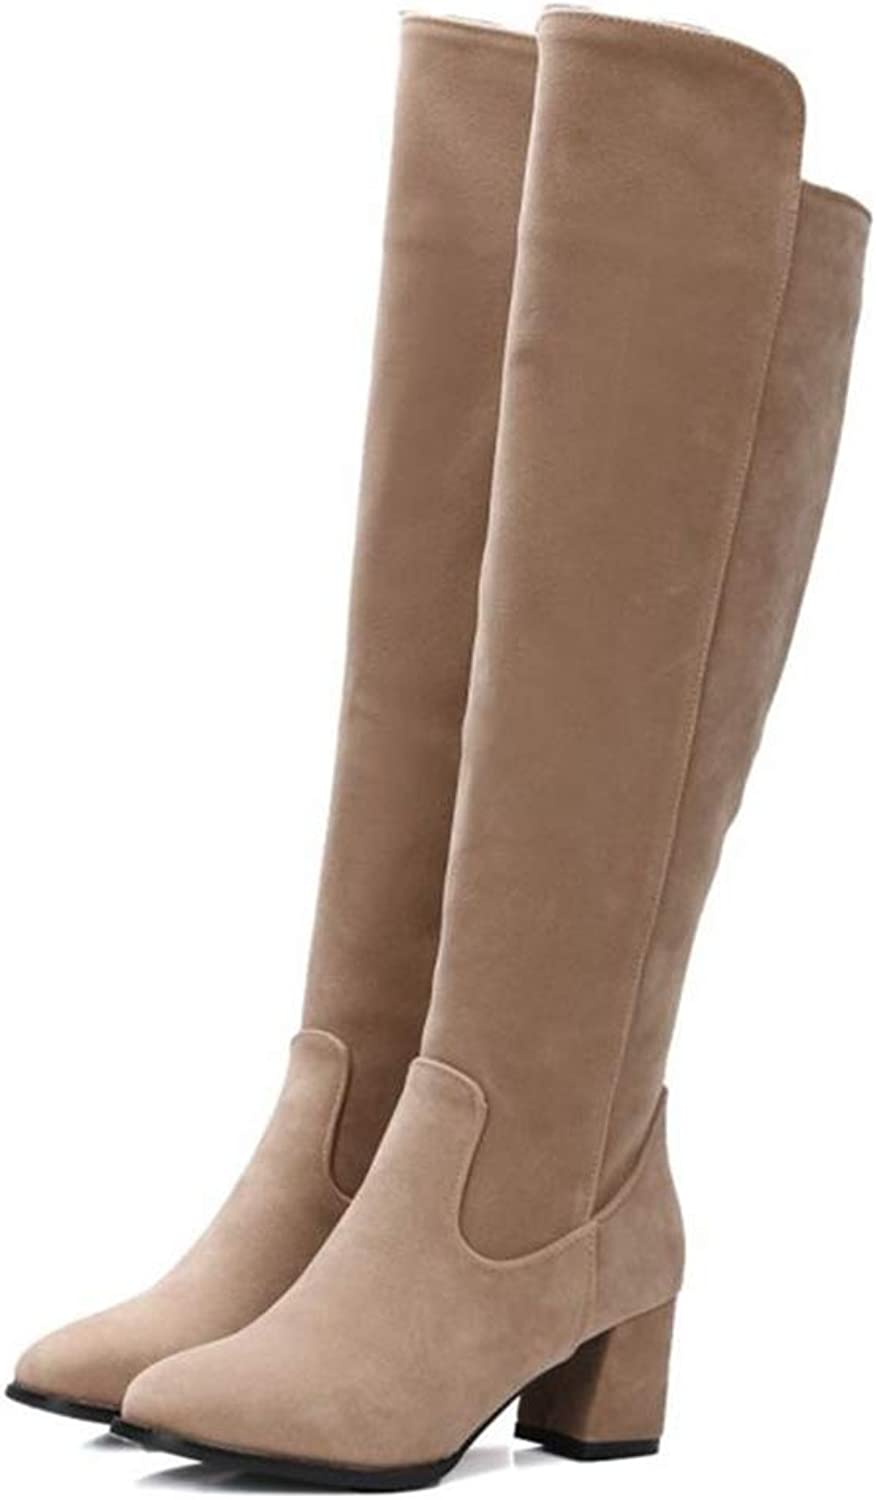 Hoxekle Women Over The Knee Boots Mid Square Heel Side Zippers Round Toe Female Sexy Cool Riding Winter Long shoes